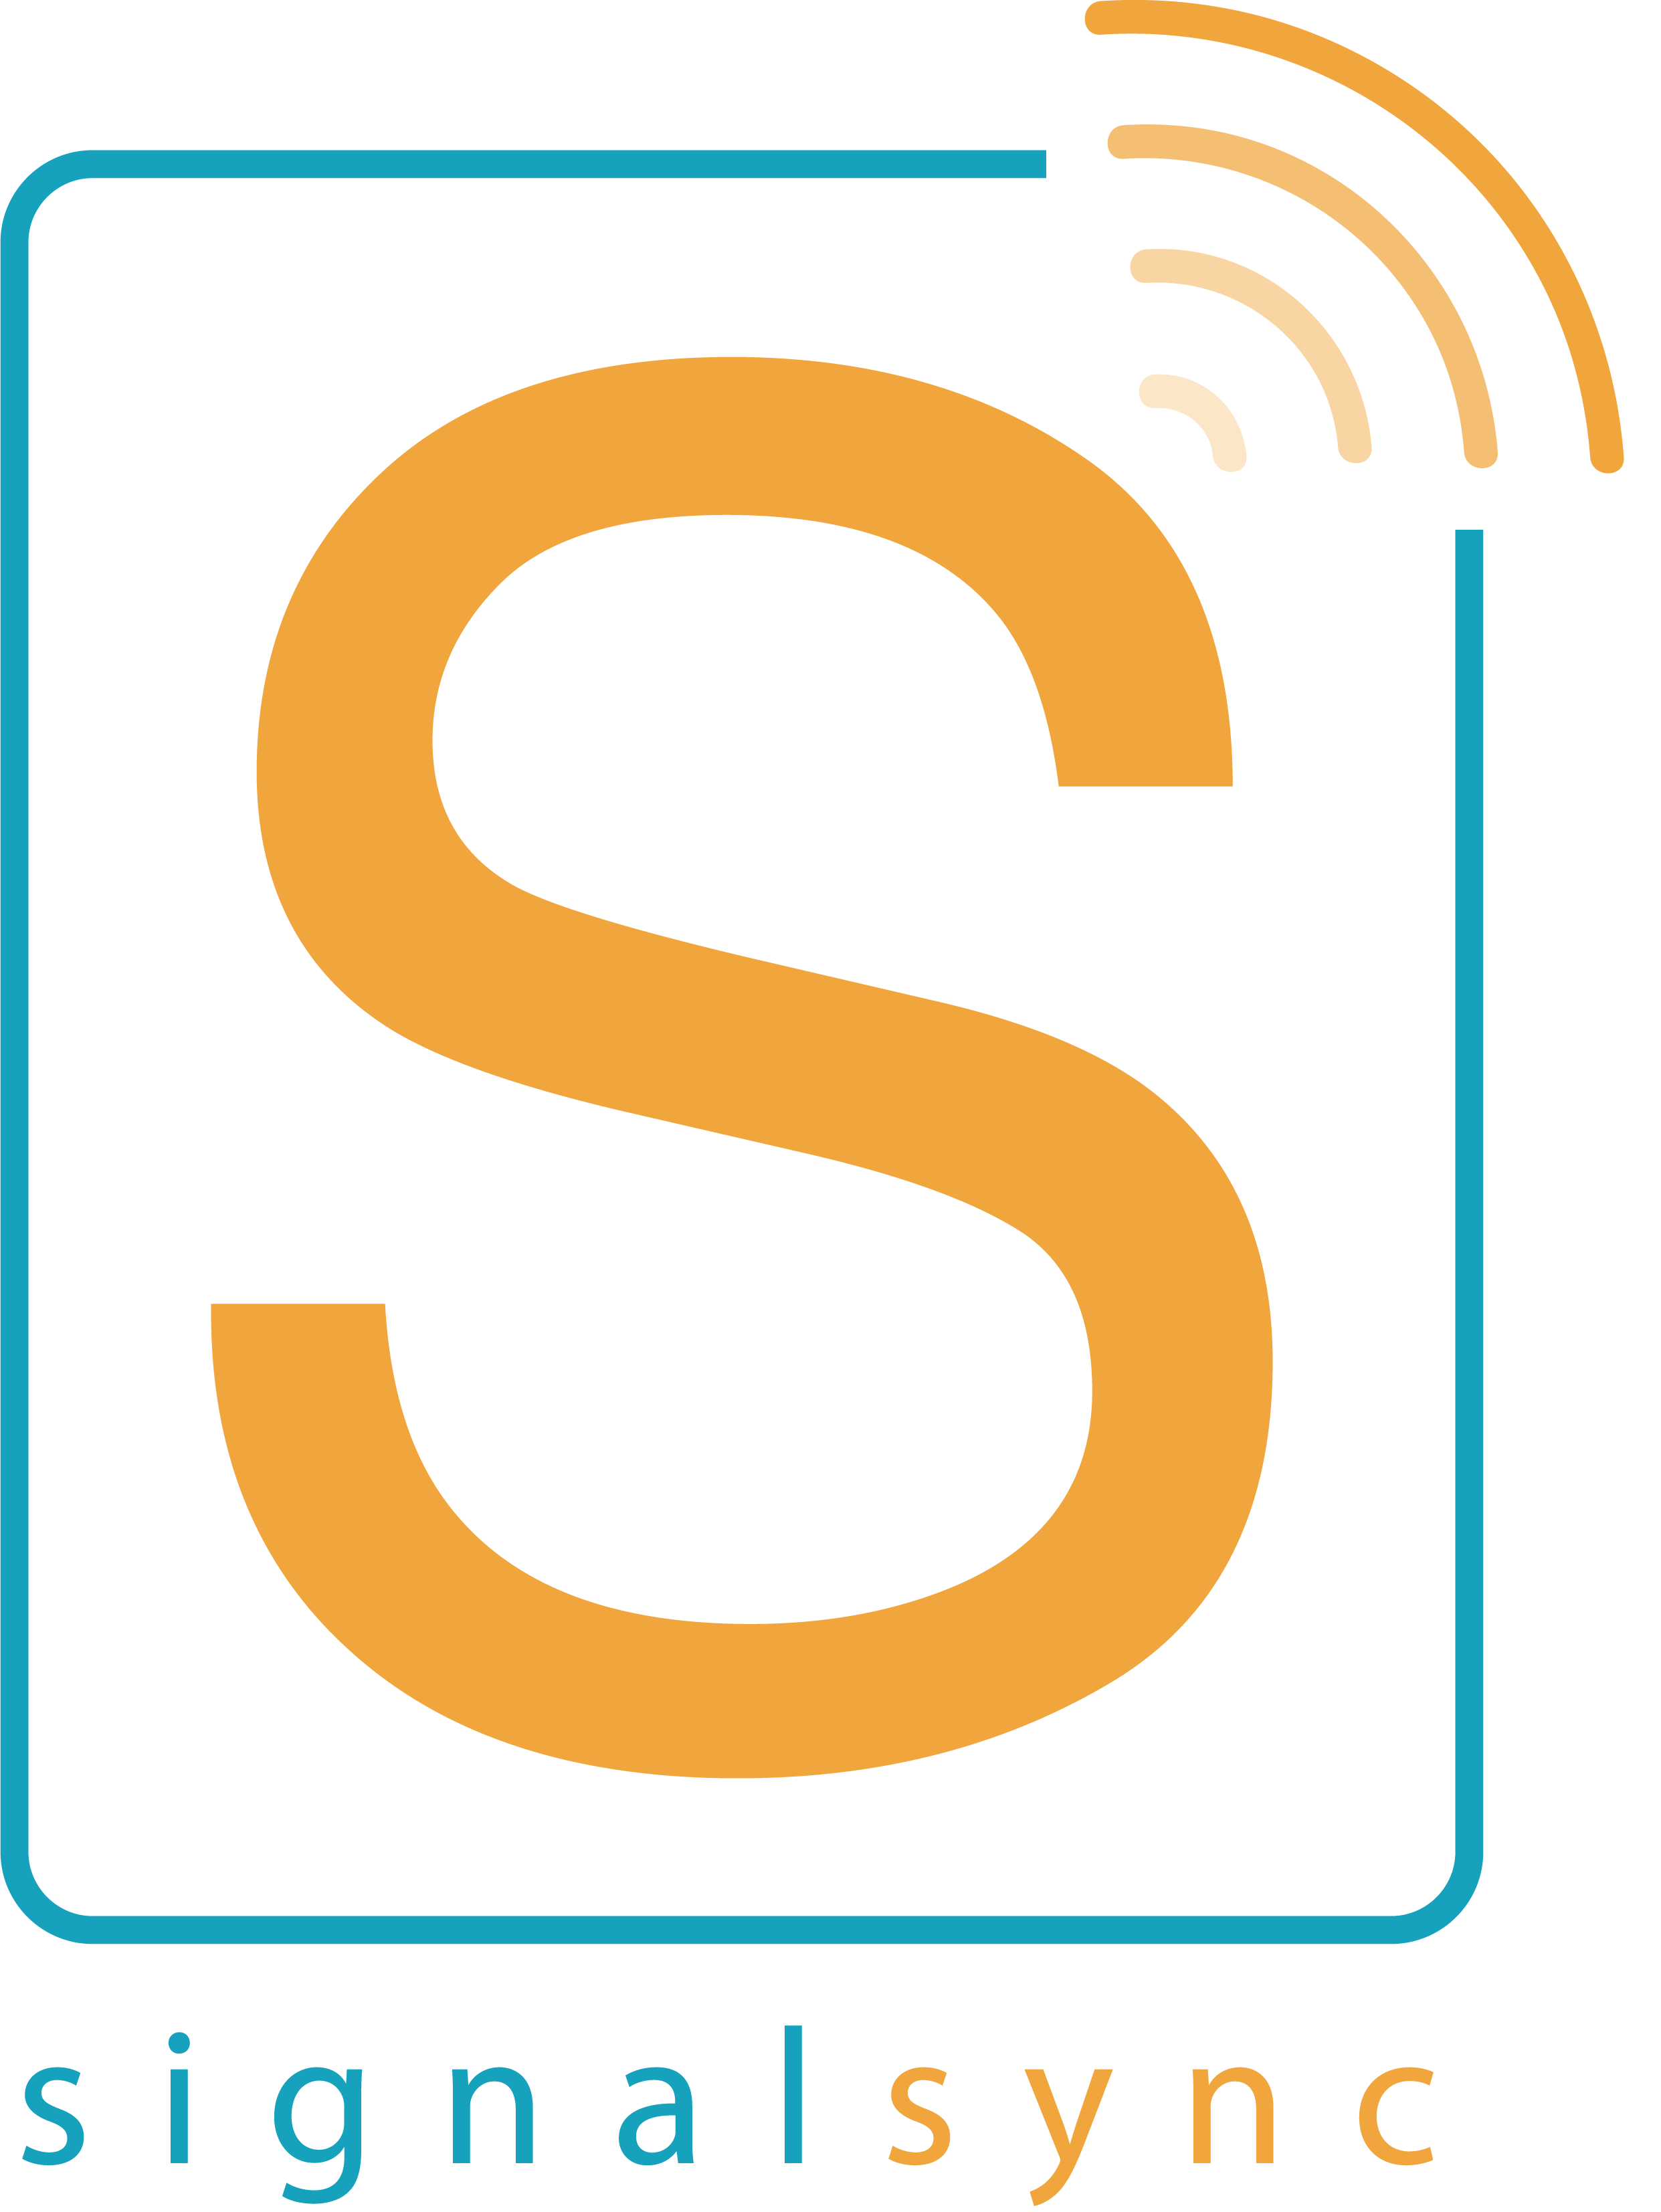 SS_LOGO_square.png